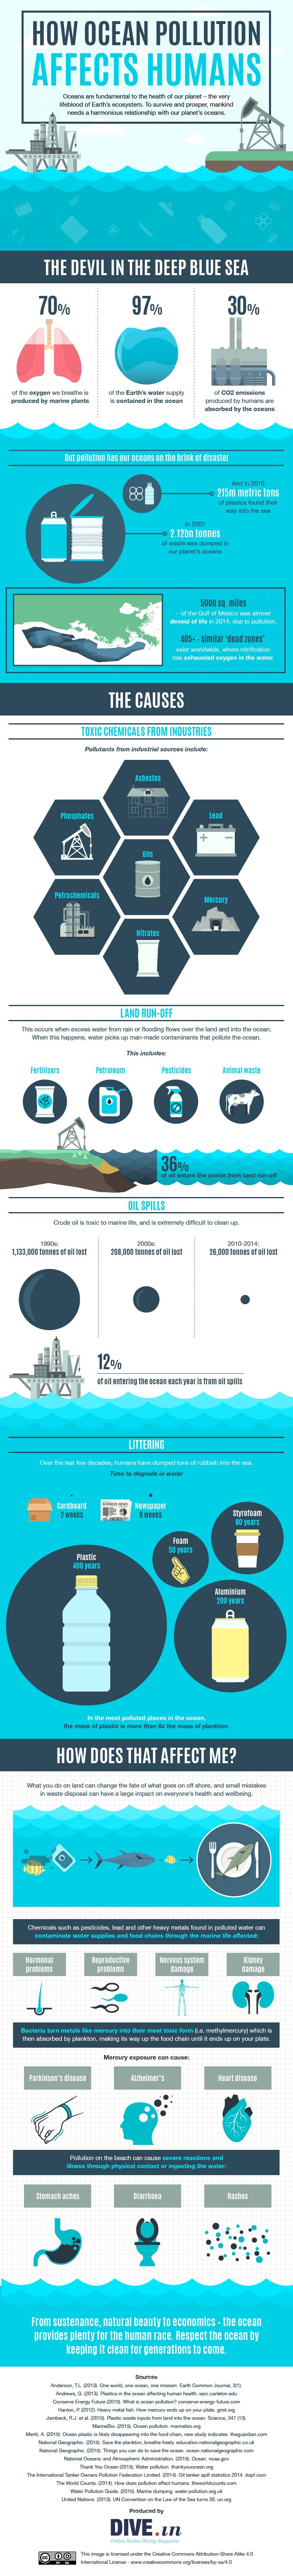 How ocean pollution affects humans #infographic